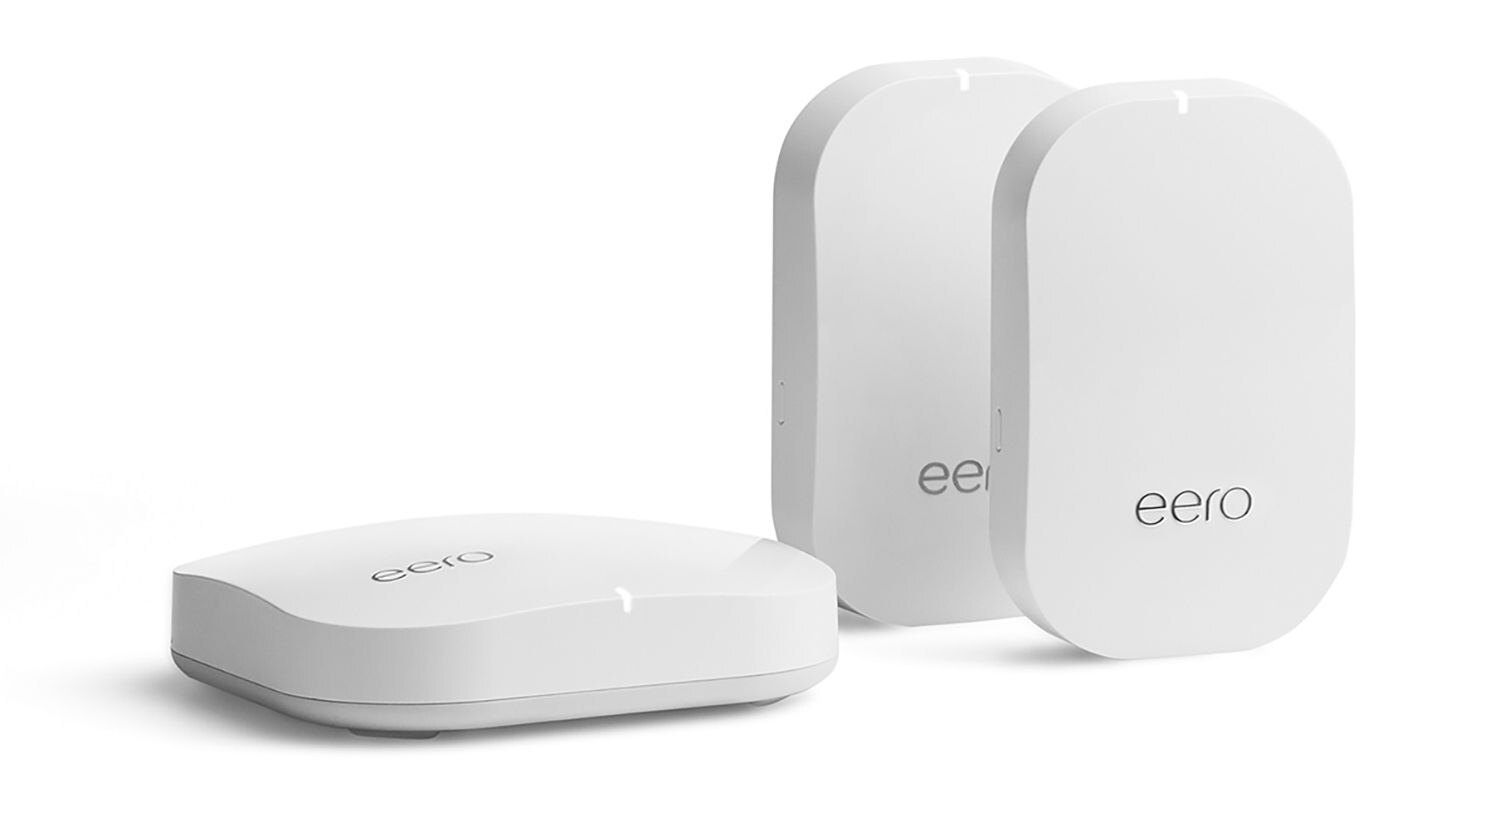 Eero base unit and two beacons can cover your whole house with Wi-Fi